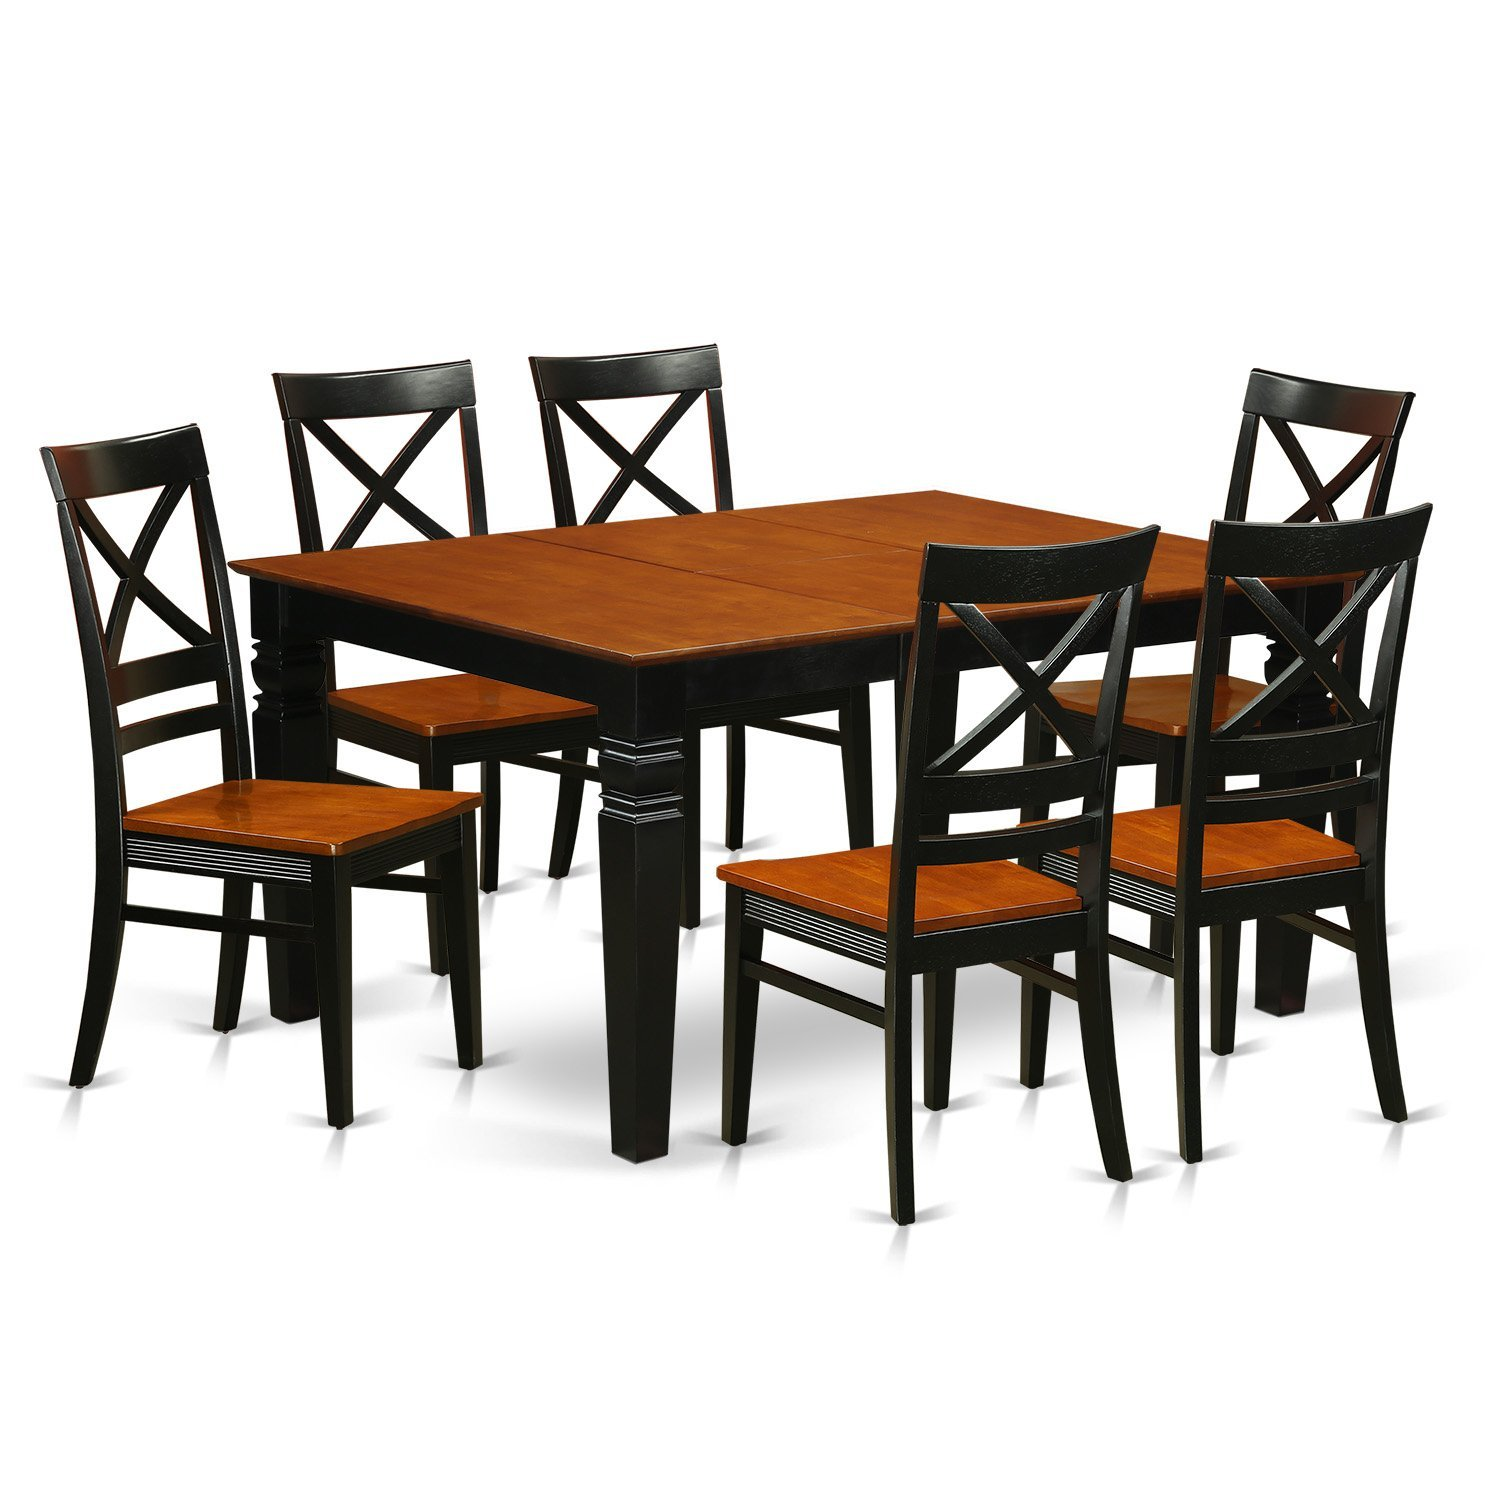 East West Furniture Weston WEQU7-BCH-W 7 Pc Set with a Kitchen Table and 6 Wood Dining Chairs, Black